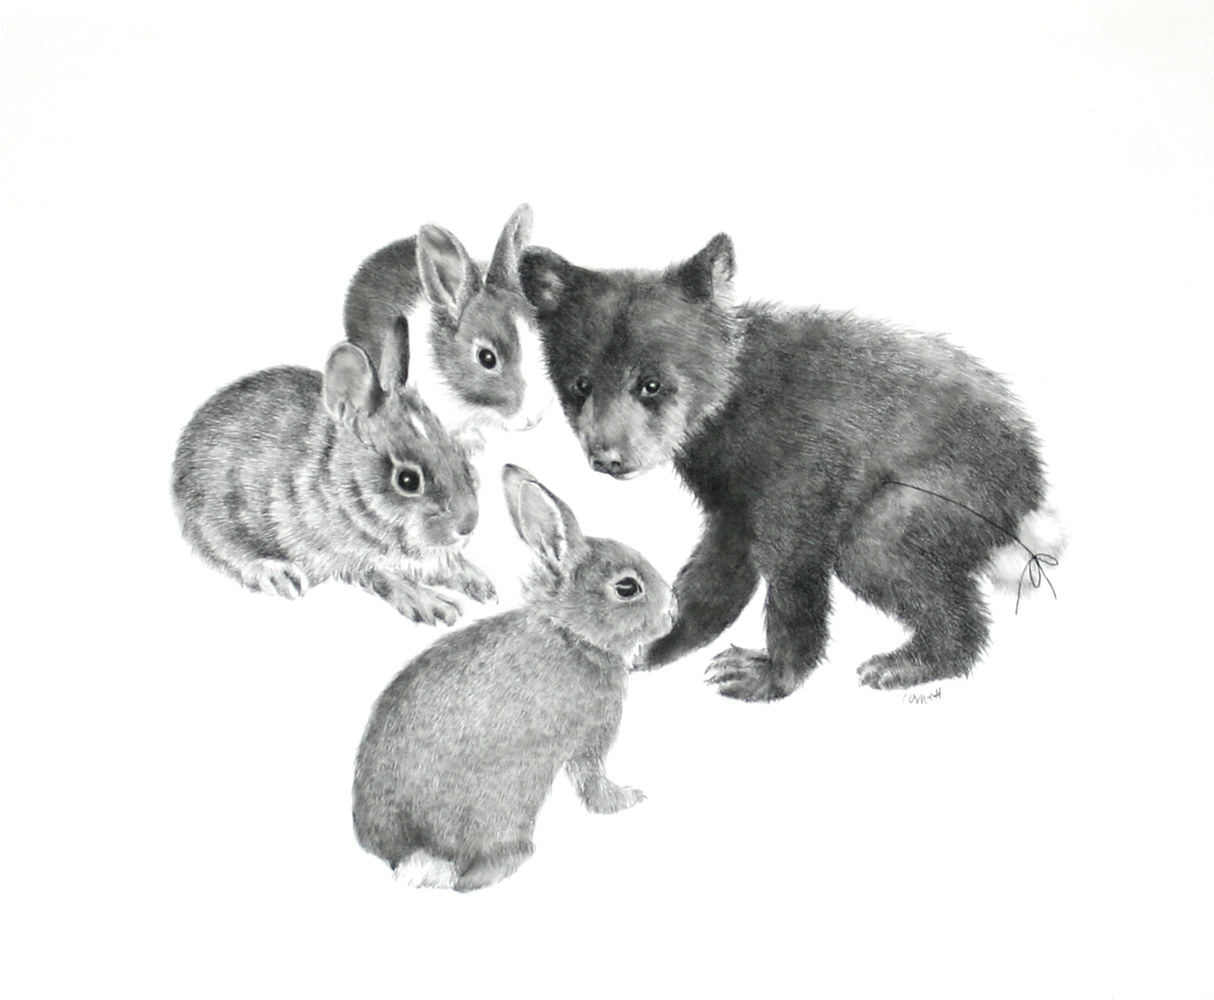 Drawing Four Bunnies by Ellen Cornett